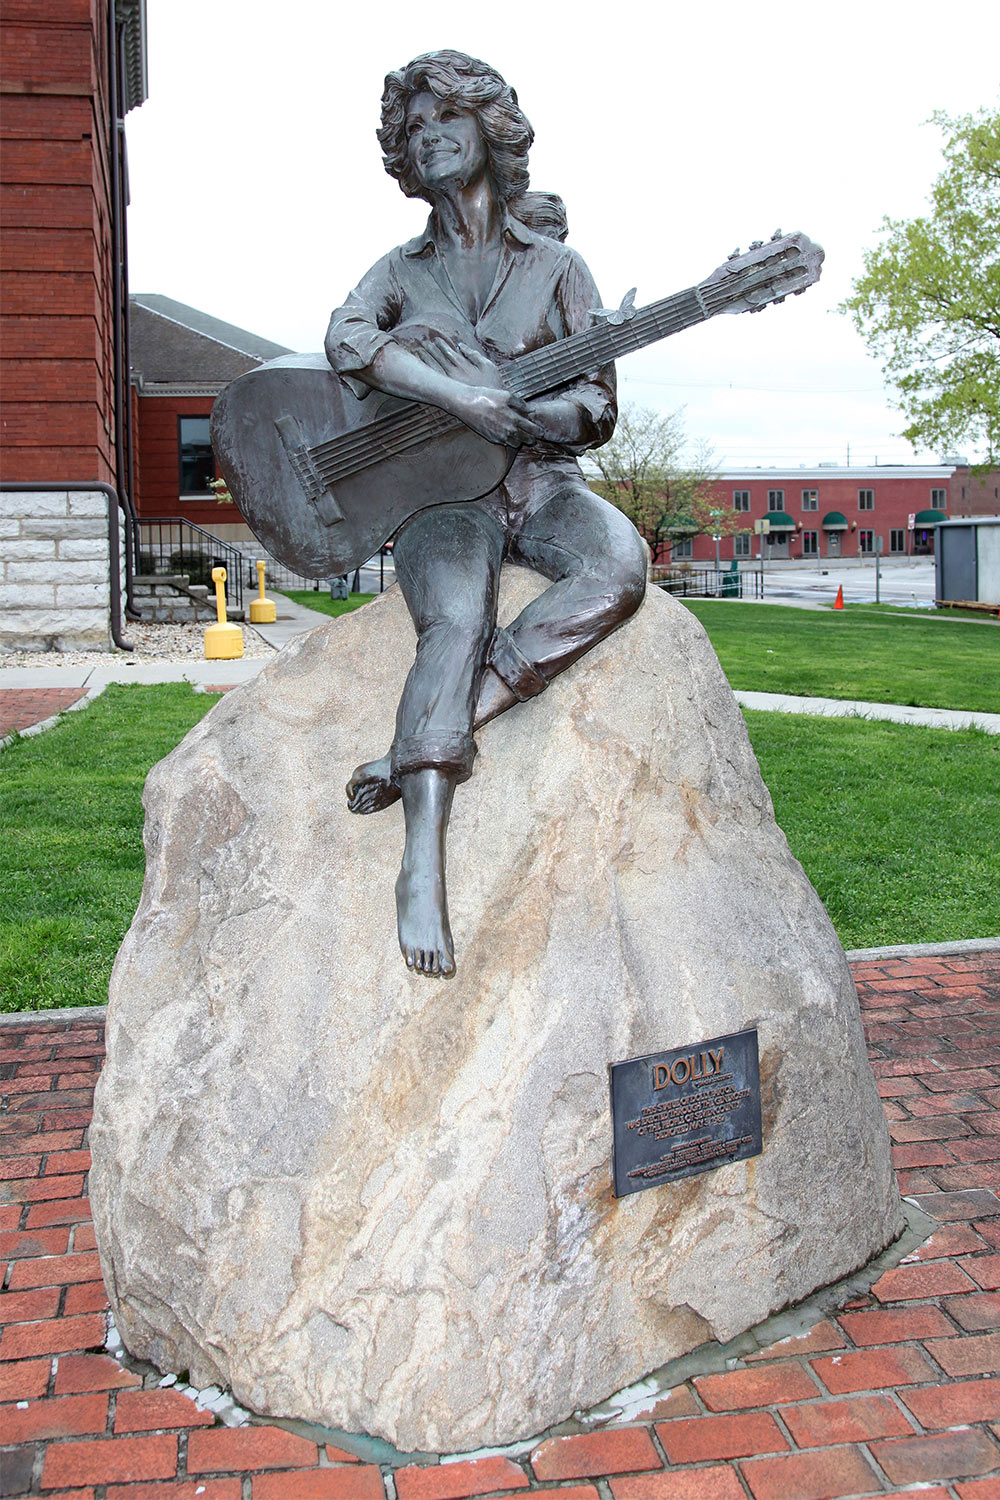 Statue of Dolly Parton